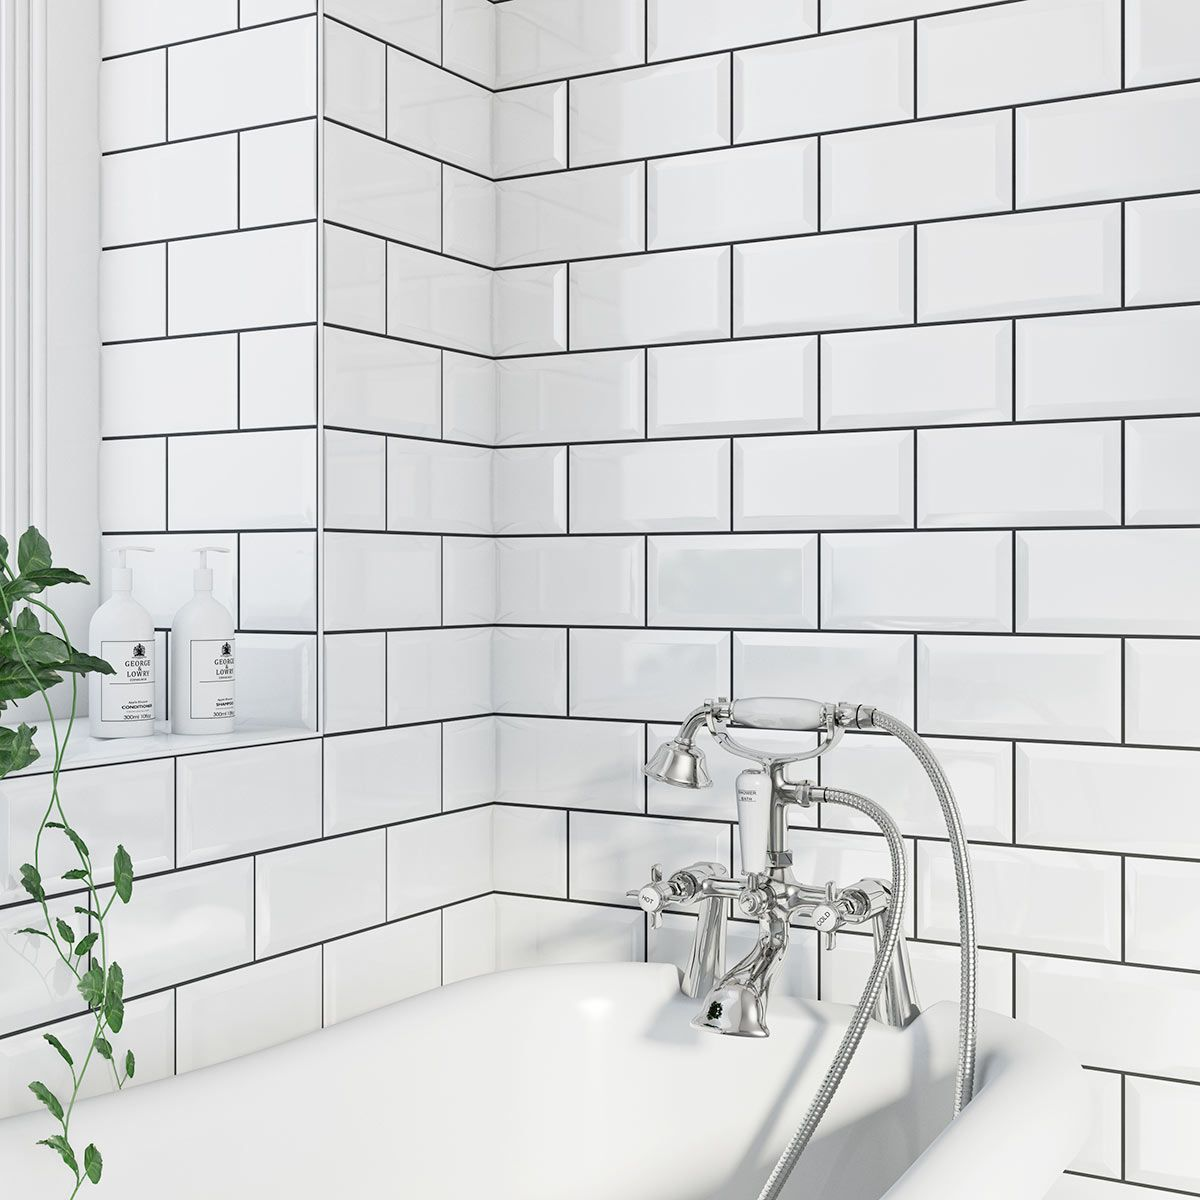 British ceramic tile metro bevel white gloss tile 100mm x 200mm british ceramic tile metro bevel white gloss tile 100mm x 200mm dailygadgetfo Images